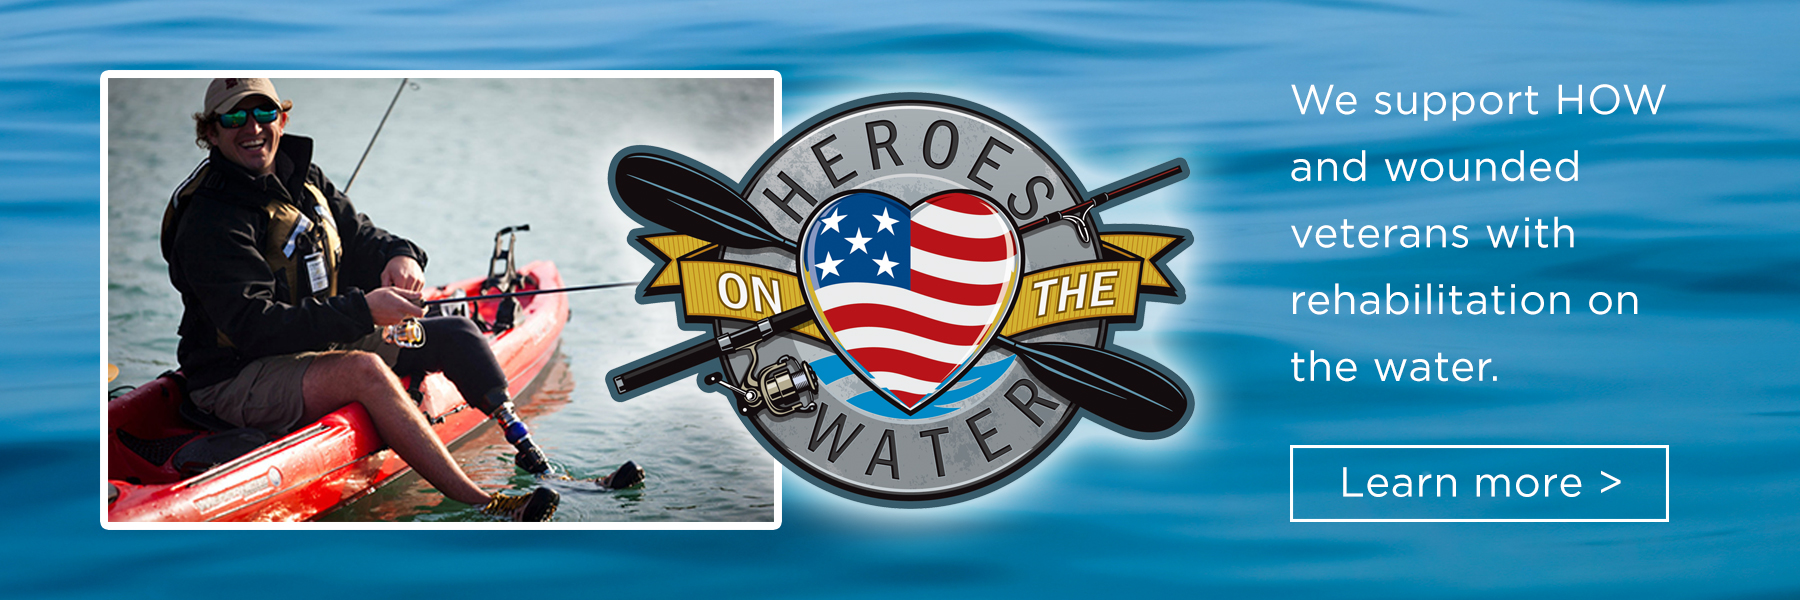 Texas Bass Angler supports Heroes on the Water